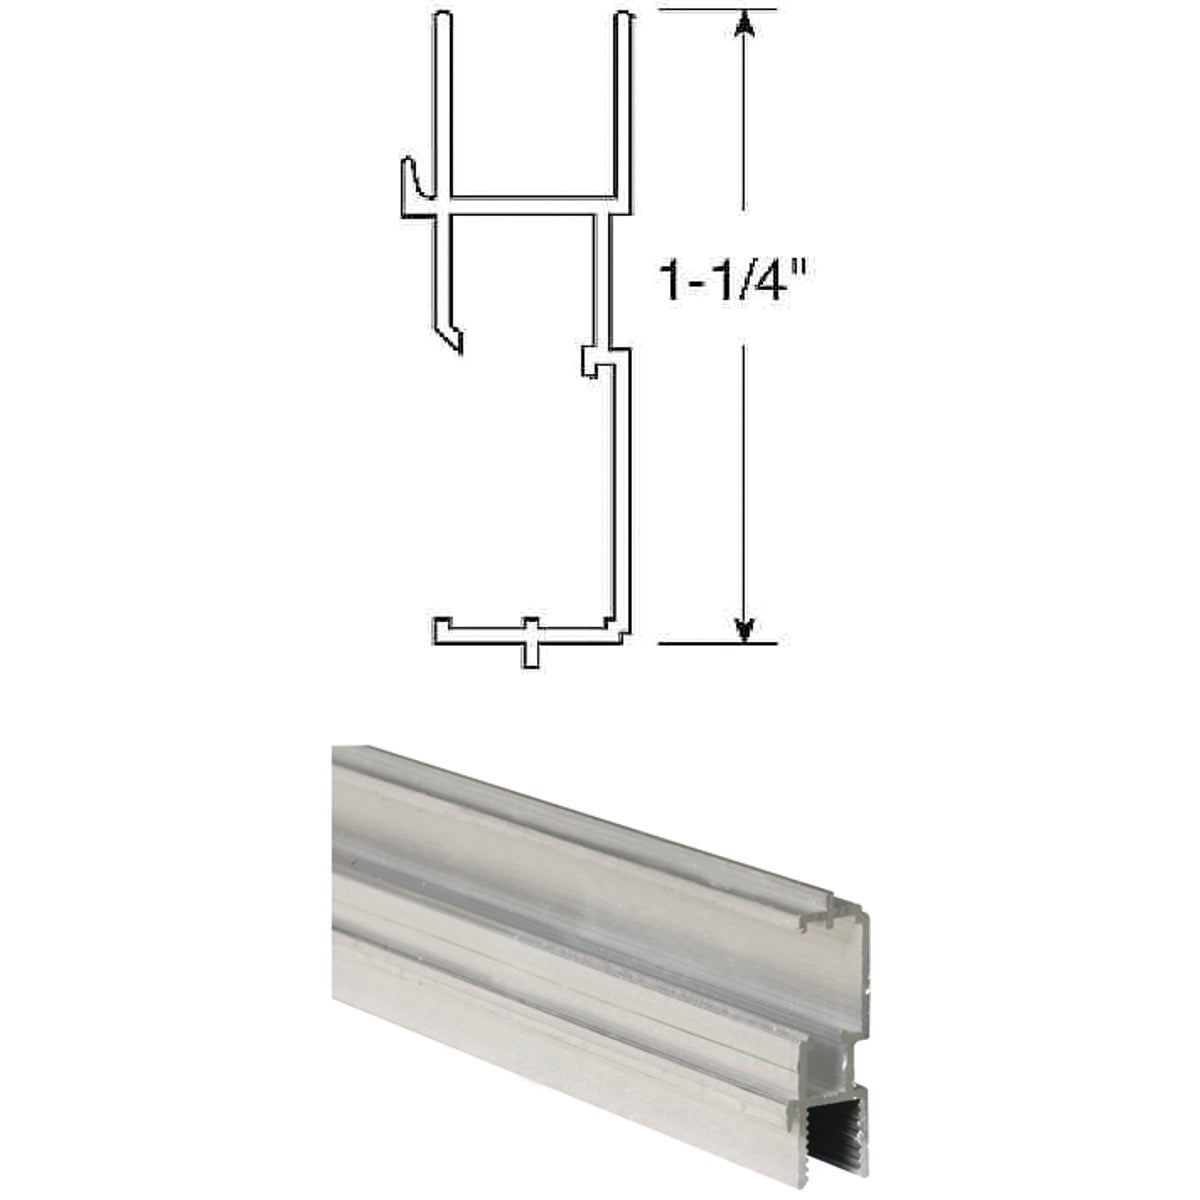 "1-1/4"" WINDOW FRAME - PL14192 by Prime Line Products"